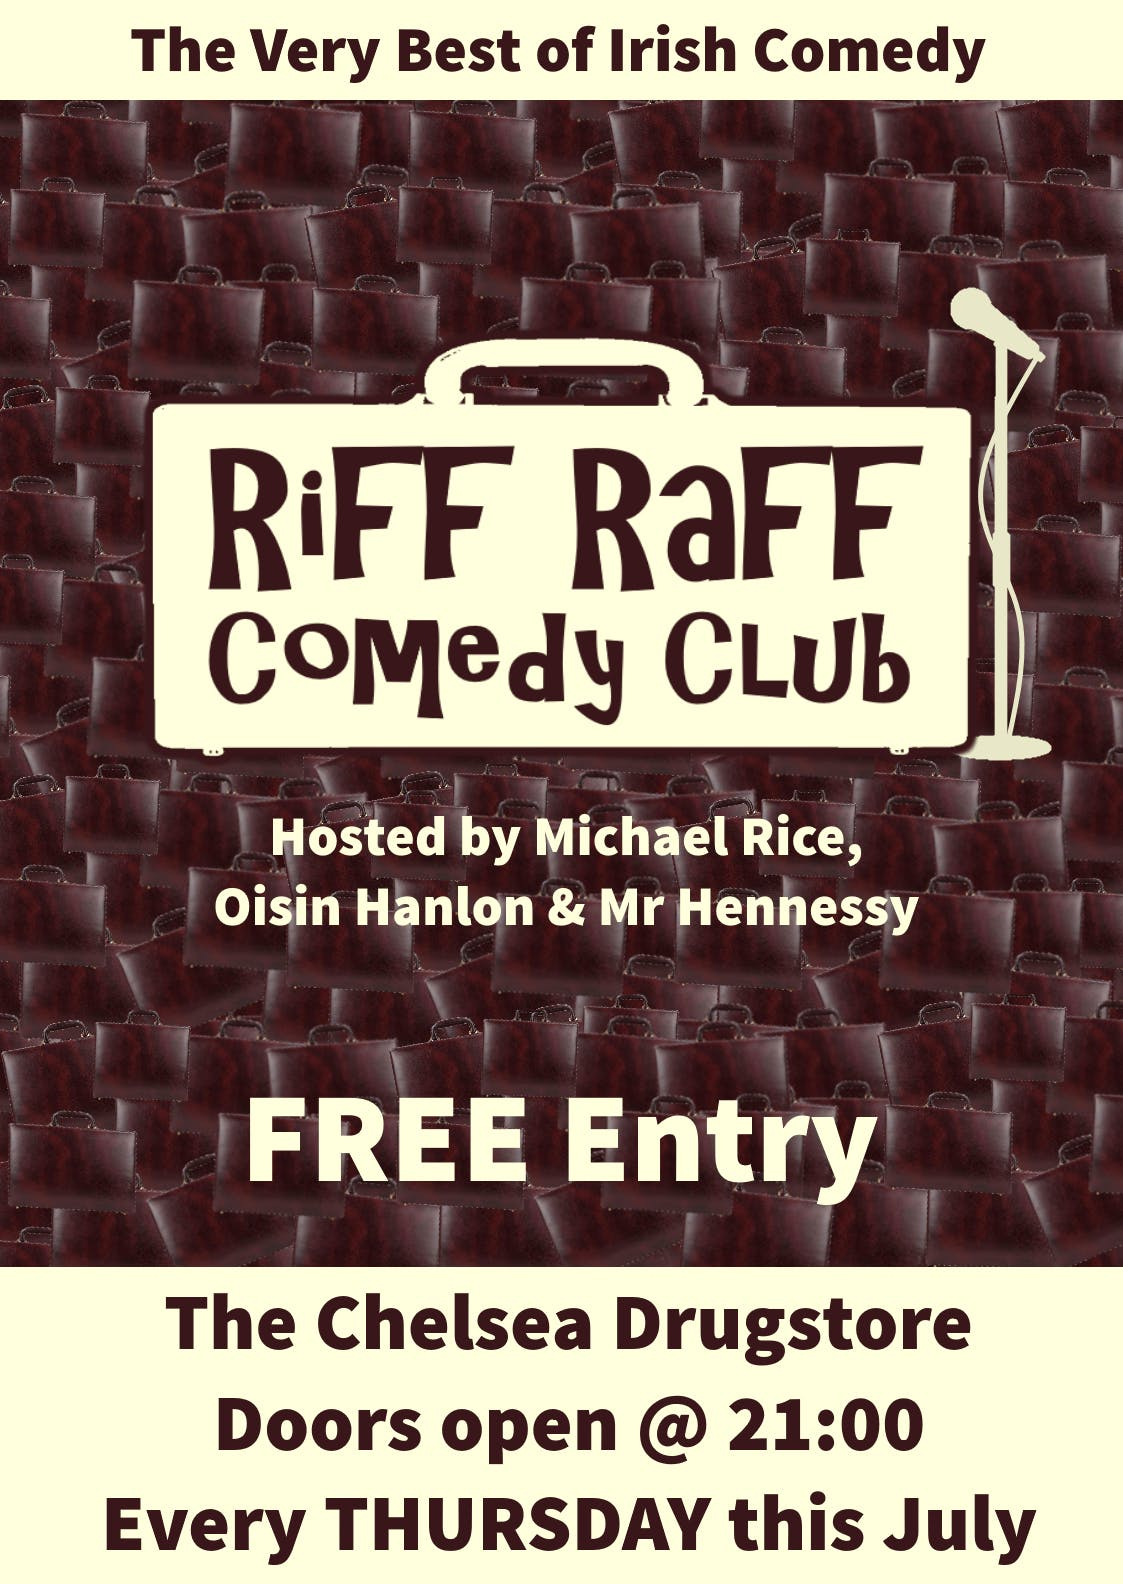 Riff-Raff Comedy July in The Drugstore FIRST SHOW